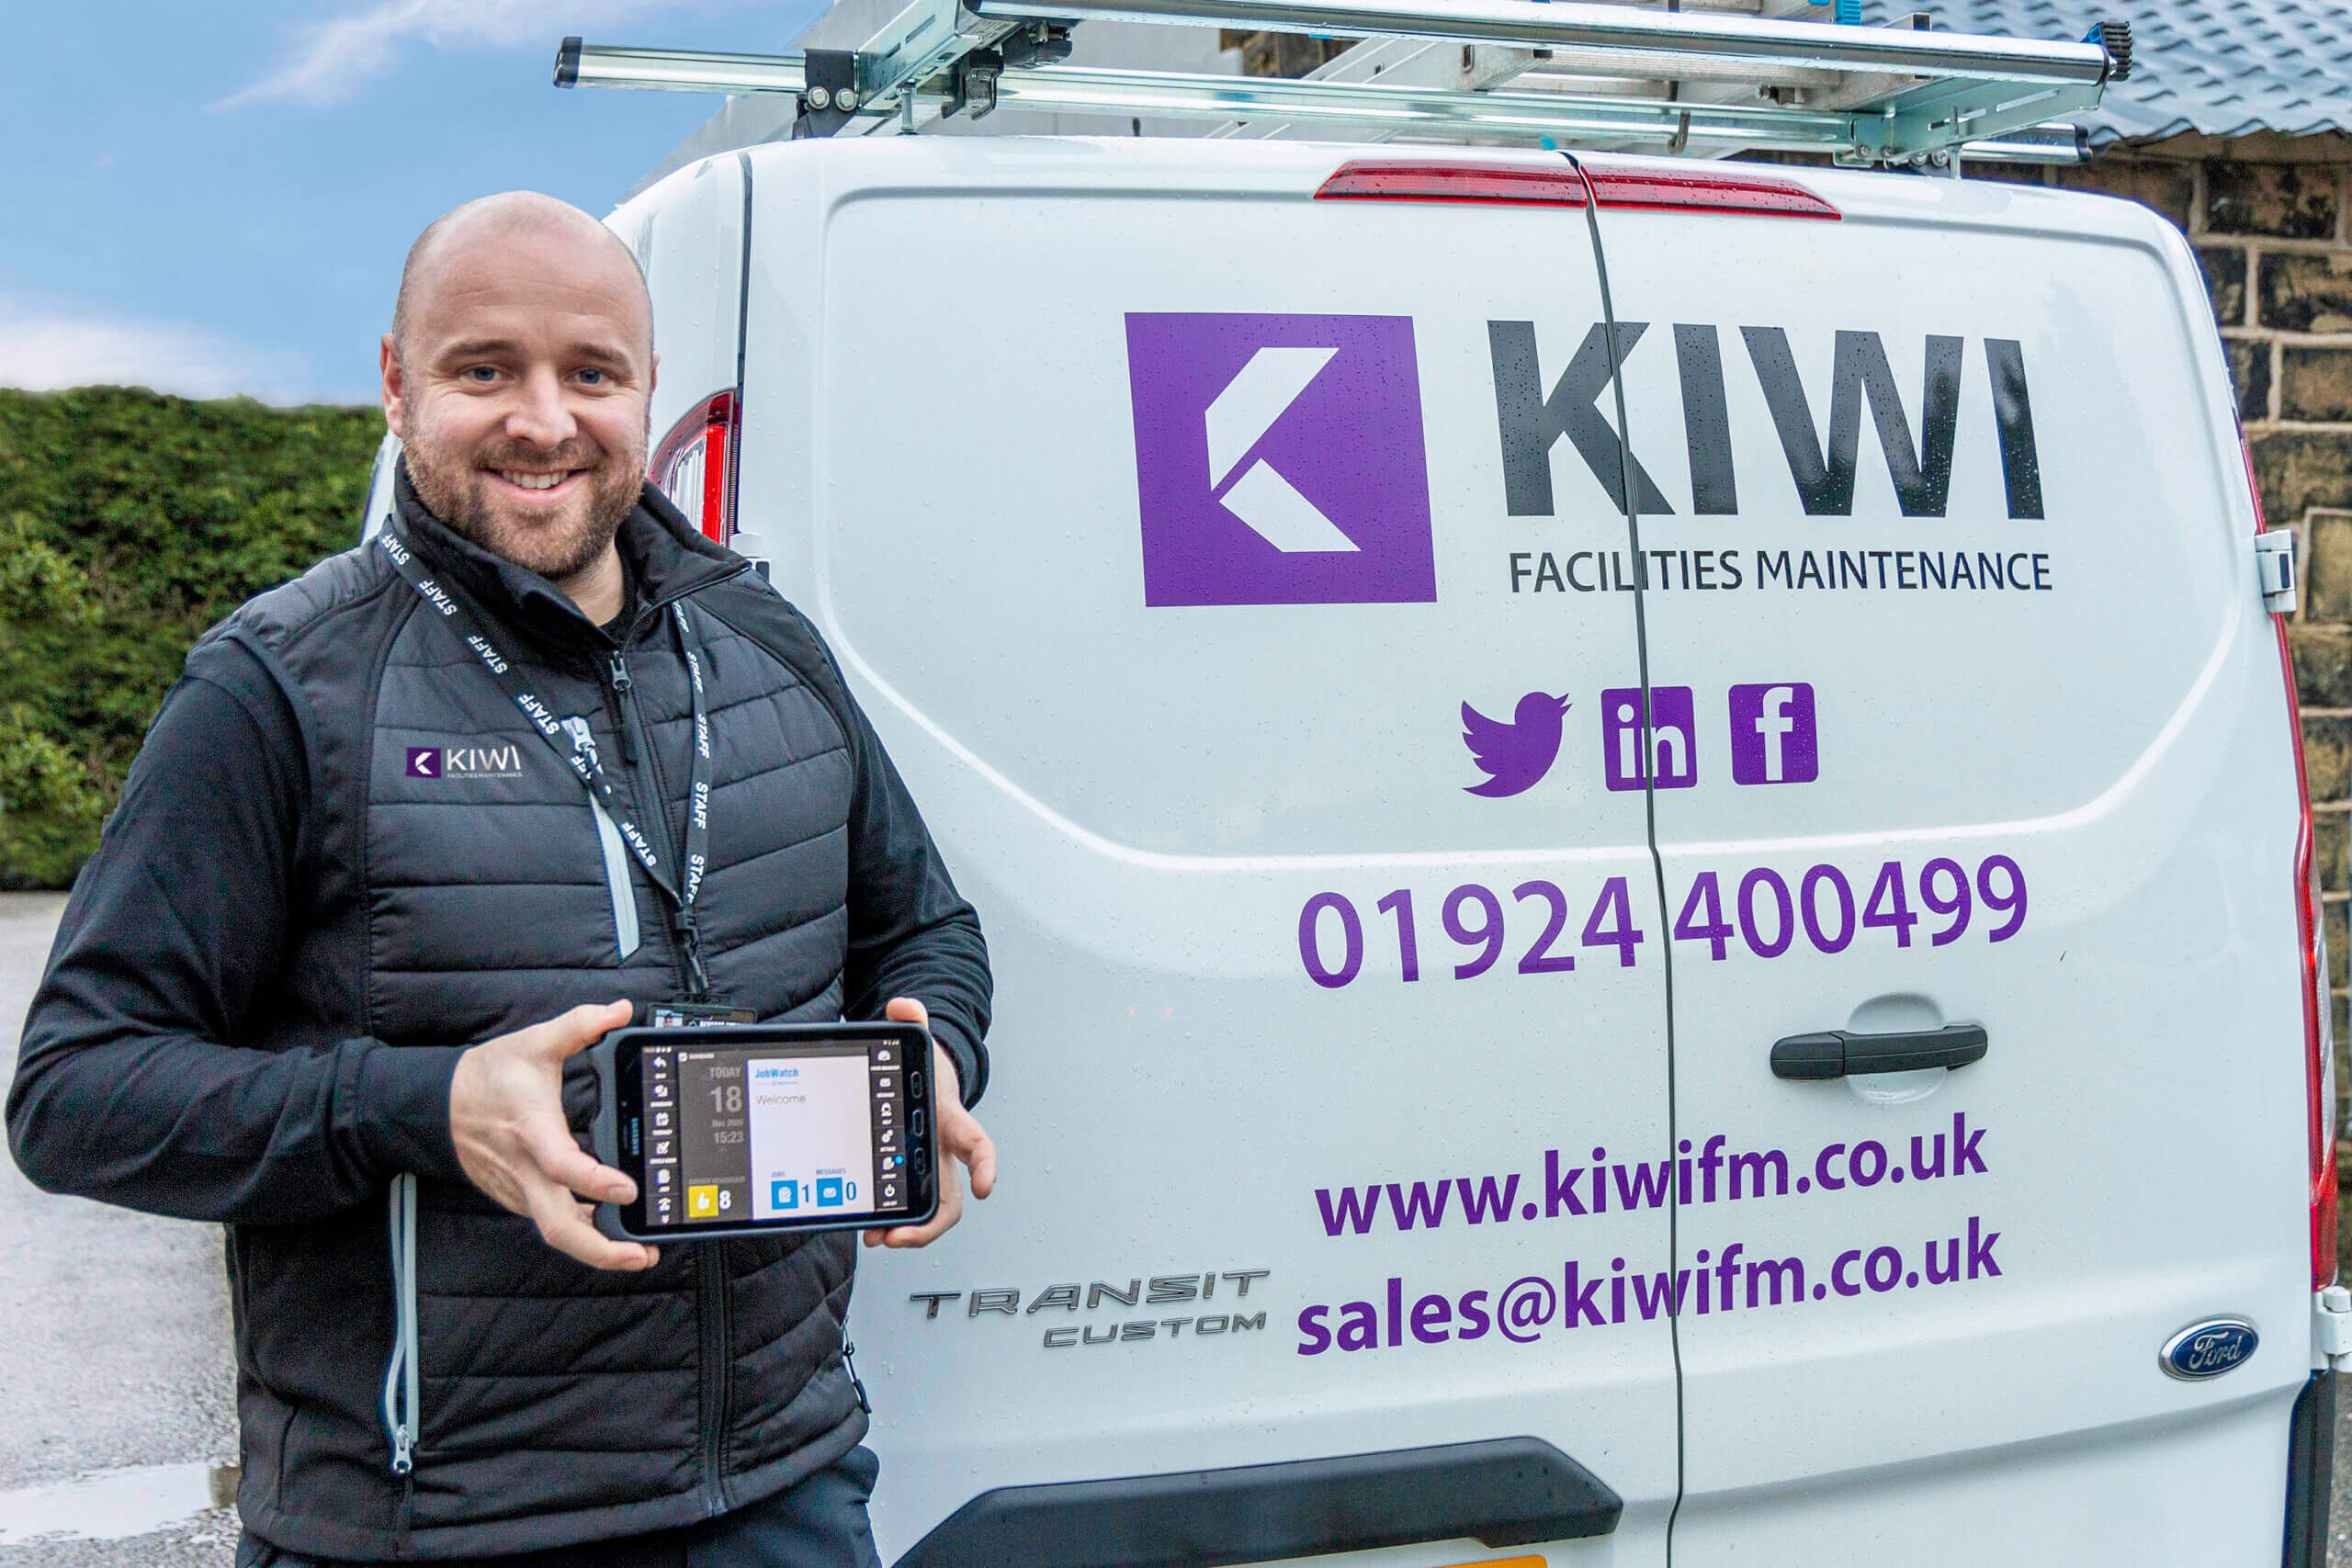 Facilities maintenance company Kiwi FM using BigChange to manage their field operations